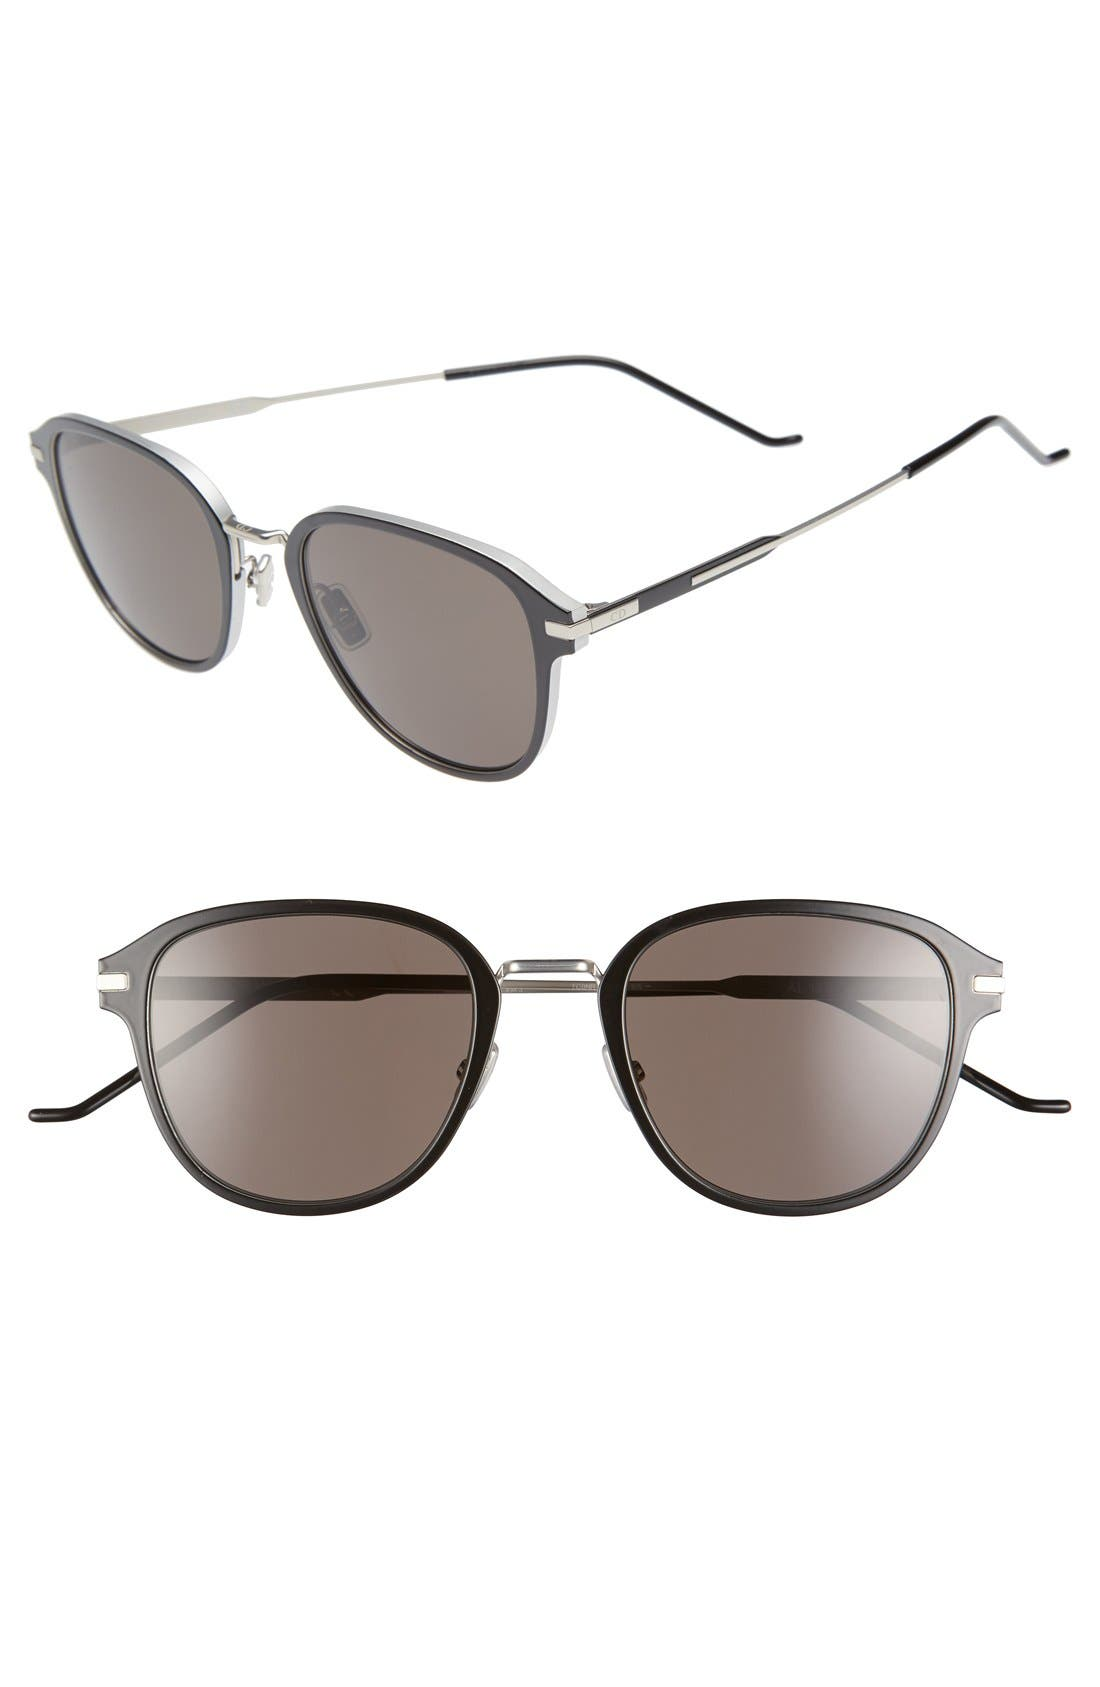 55mm Wire Sunglasses,                             Main thumbnail 1, color,                             Metallic Silver/ Black